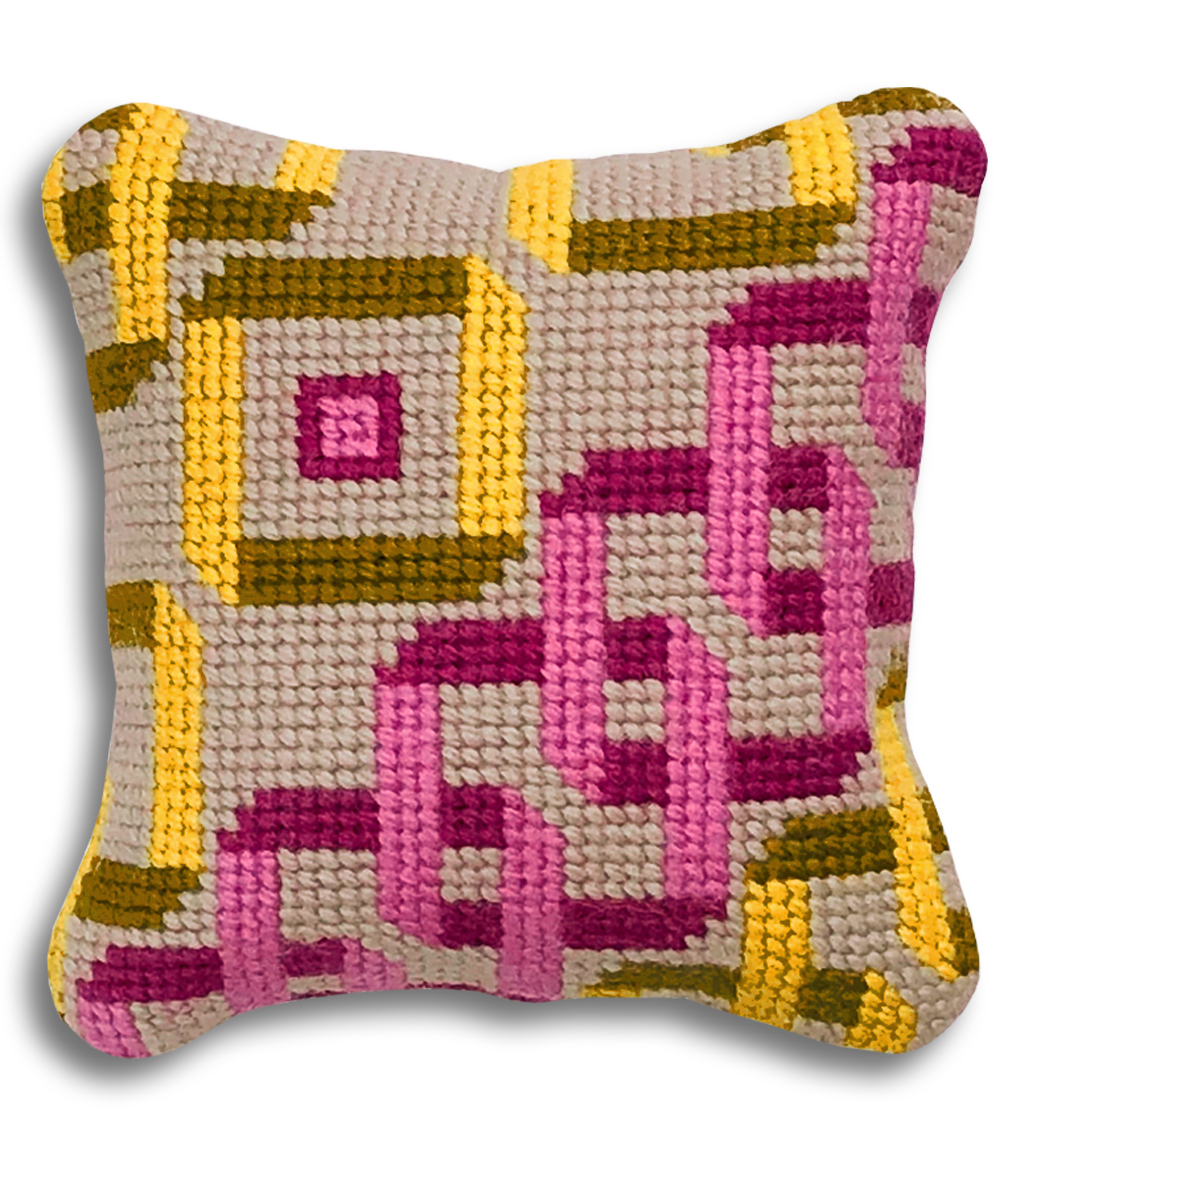 NEW! Interlocking Squares mini kit Pink, yellow and mustard colourway £16  (includes free UK postage)